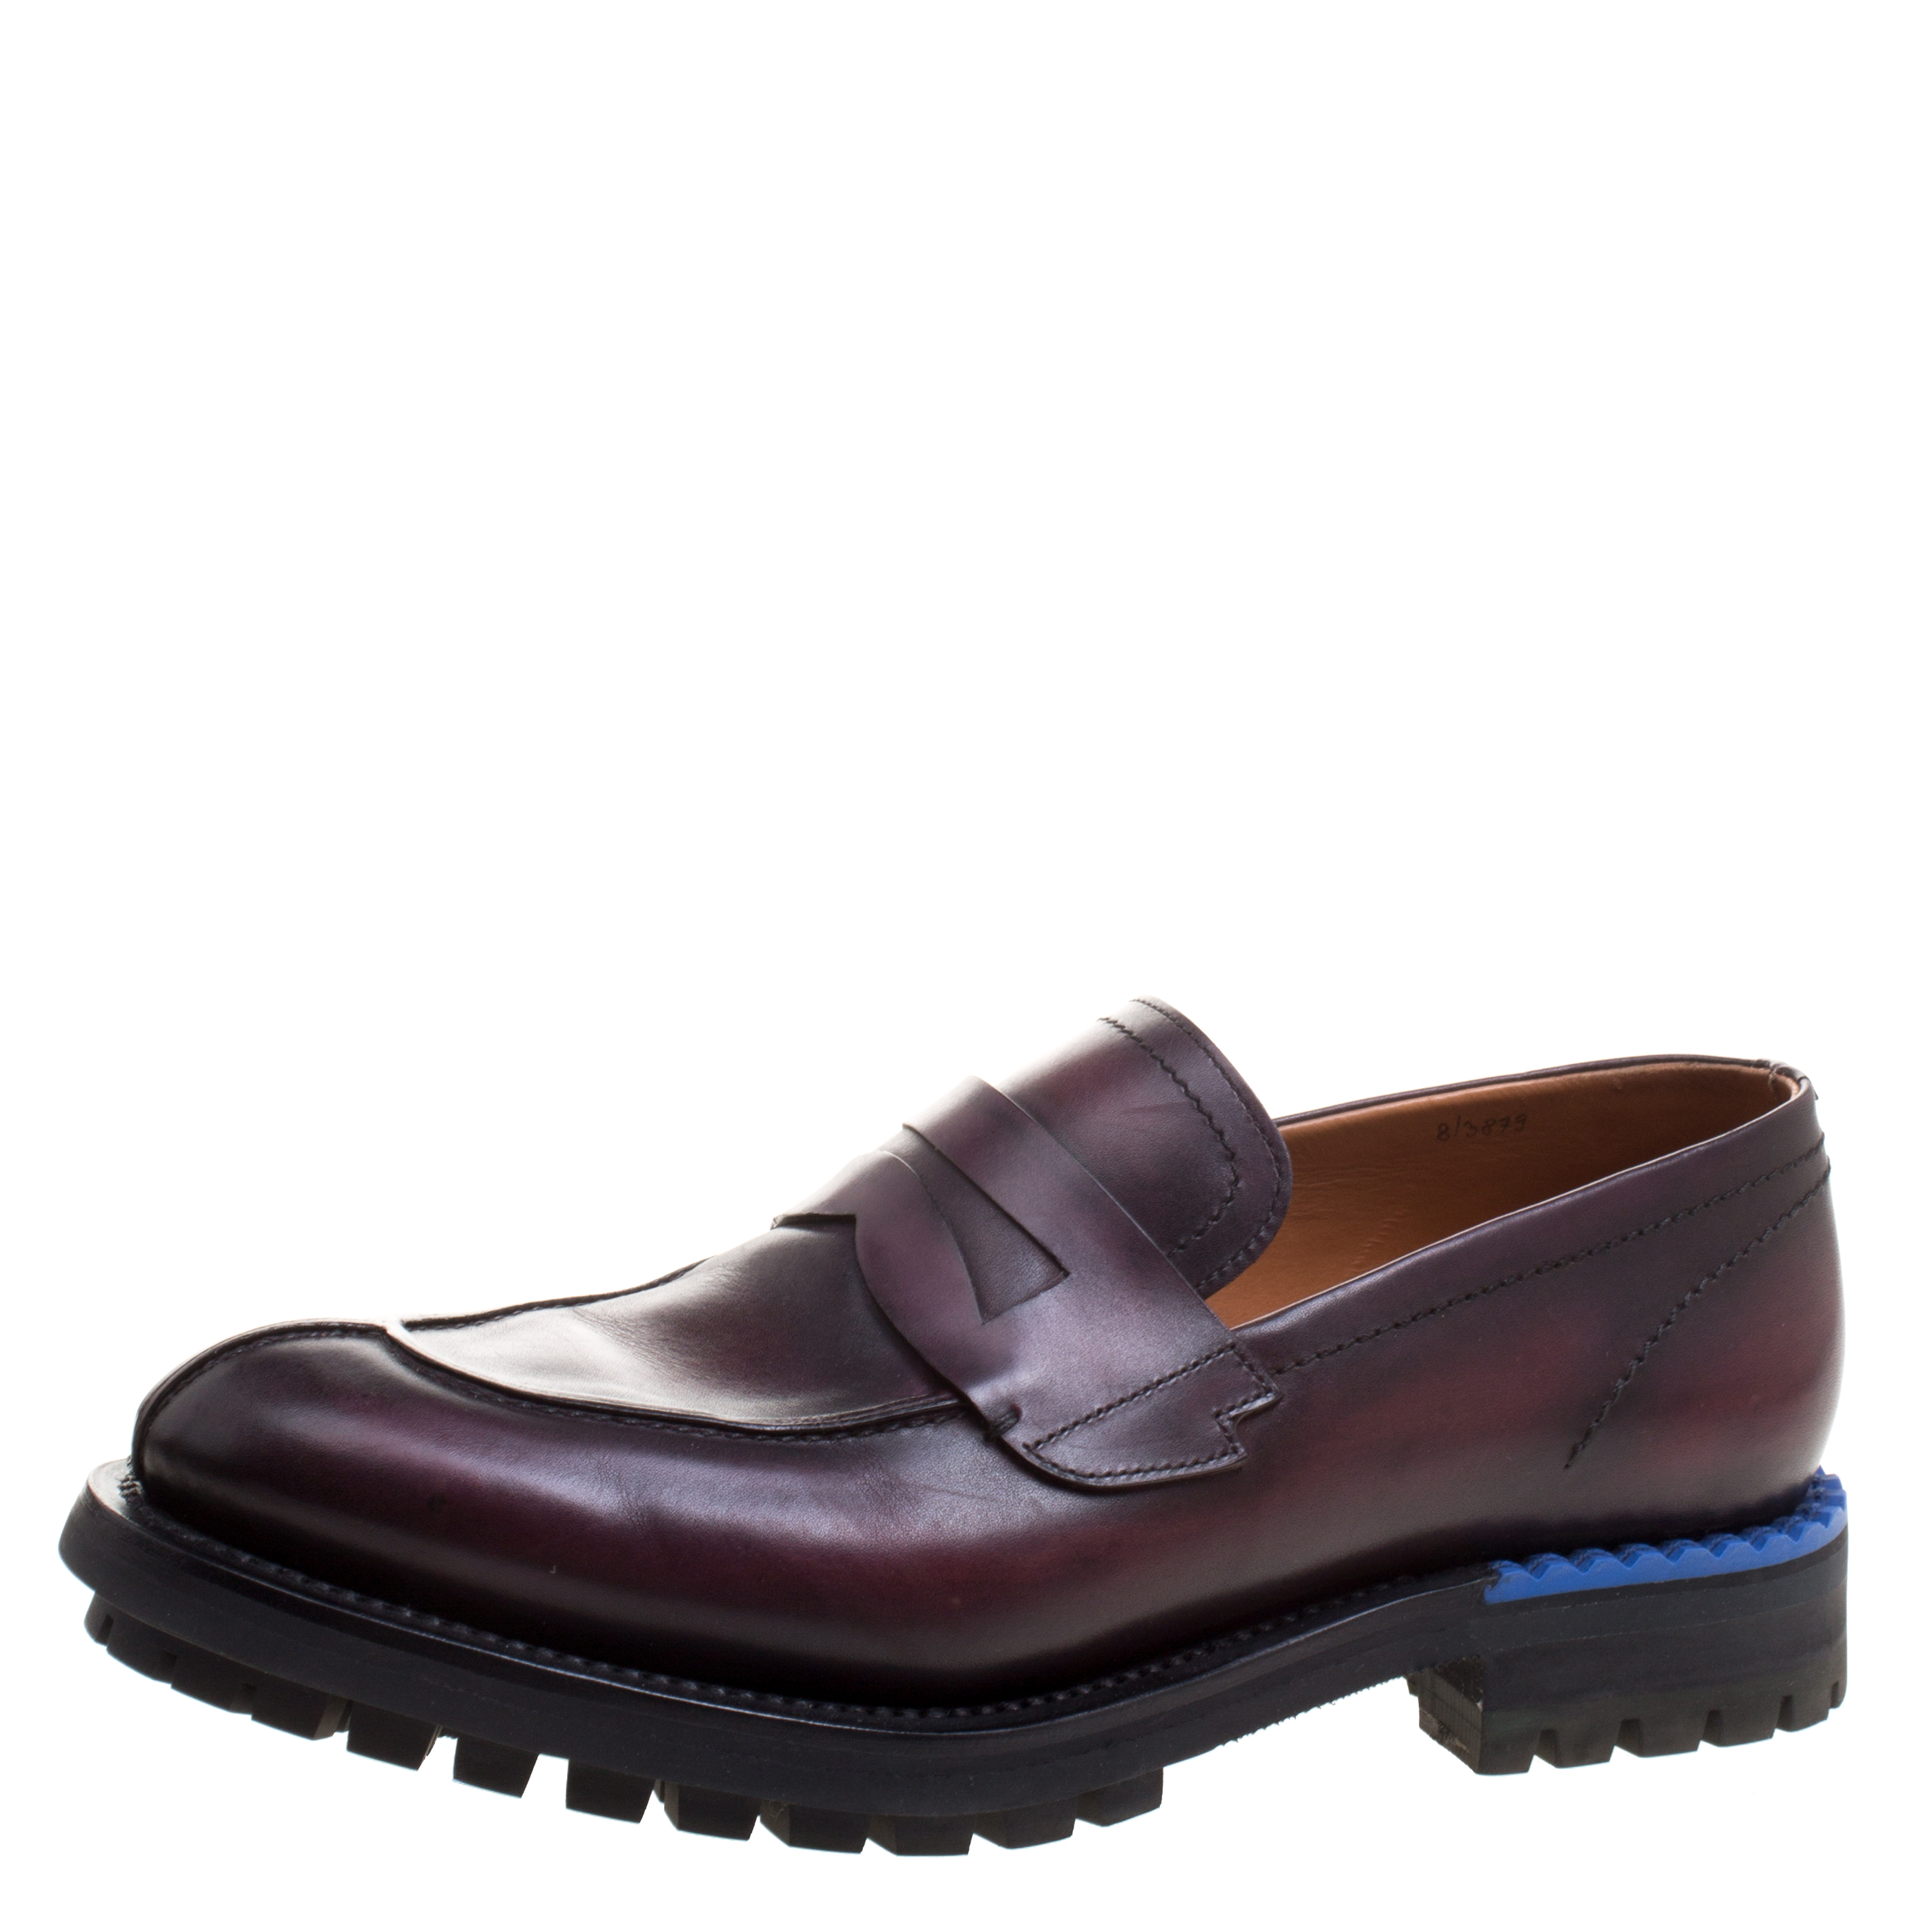 Berluti Two Tone Burgundy Leather Penny Loafers Size 42